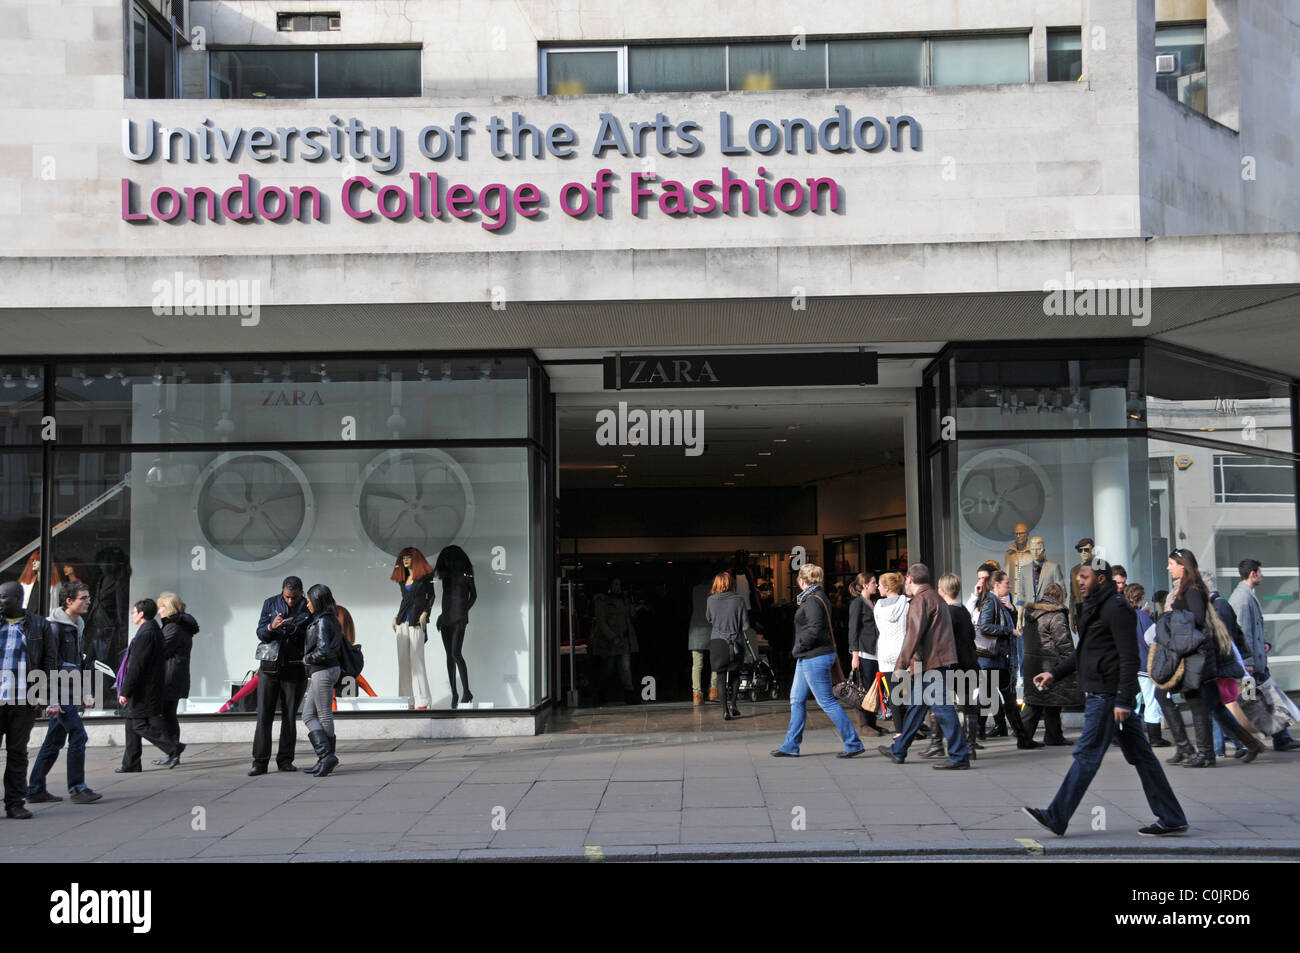 London College of Fashion - UAL - University of the Arts London 38